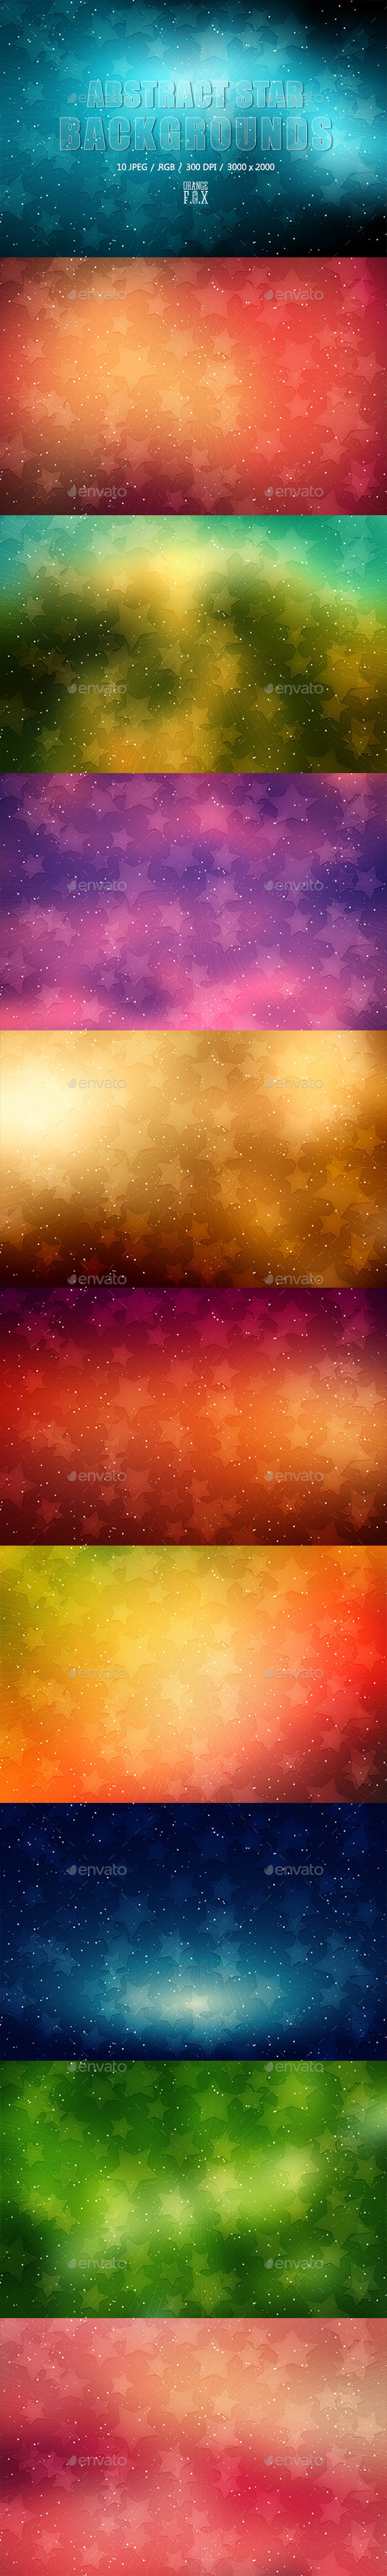 10 Abstract Star Backgrounds_preview.jpg